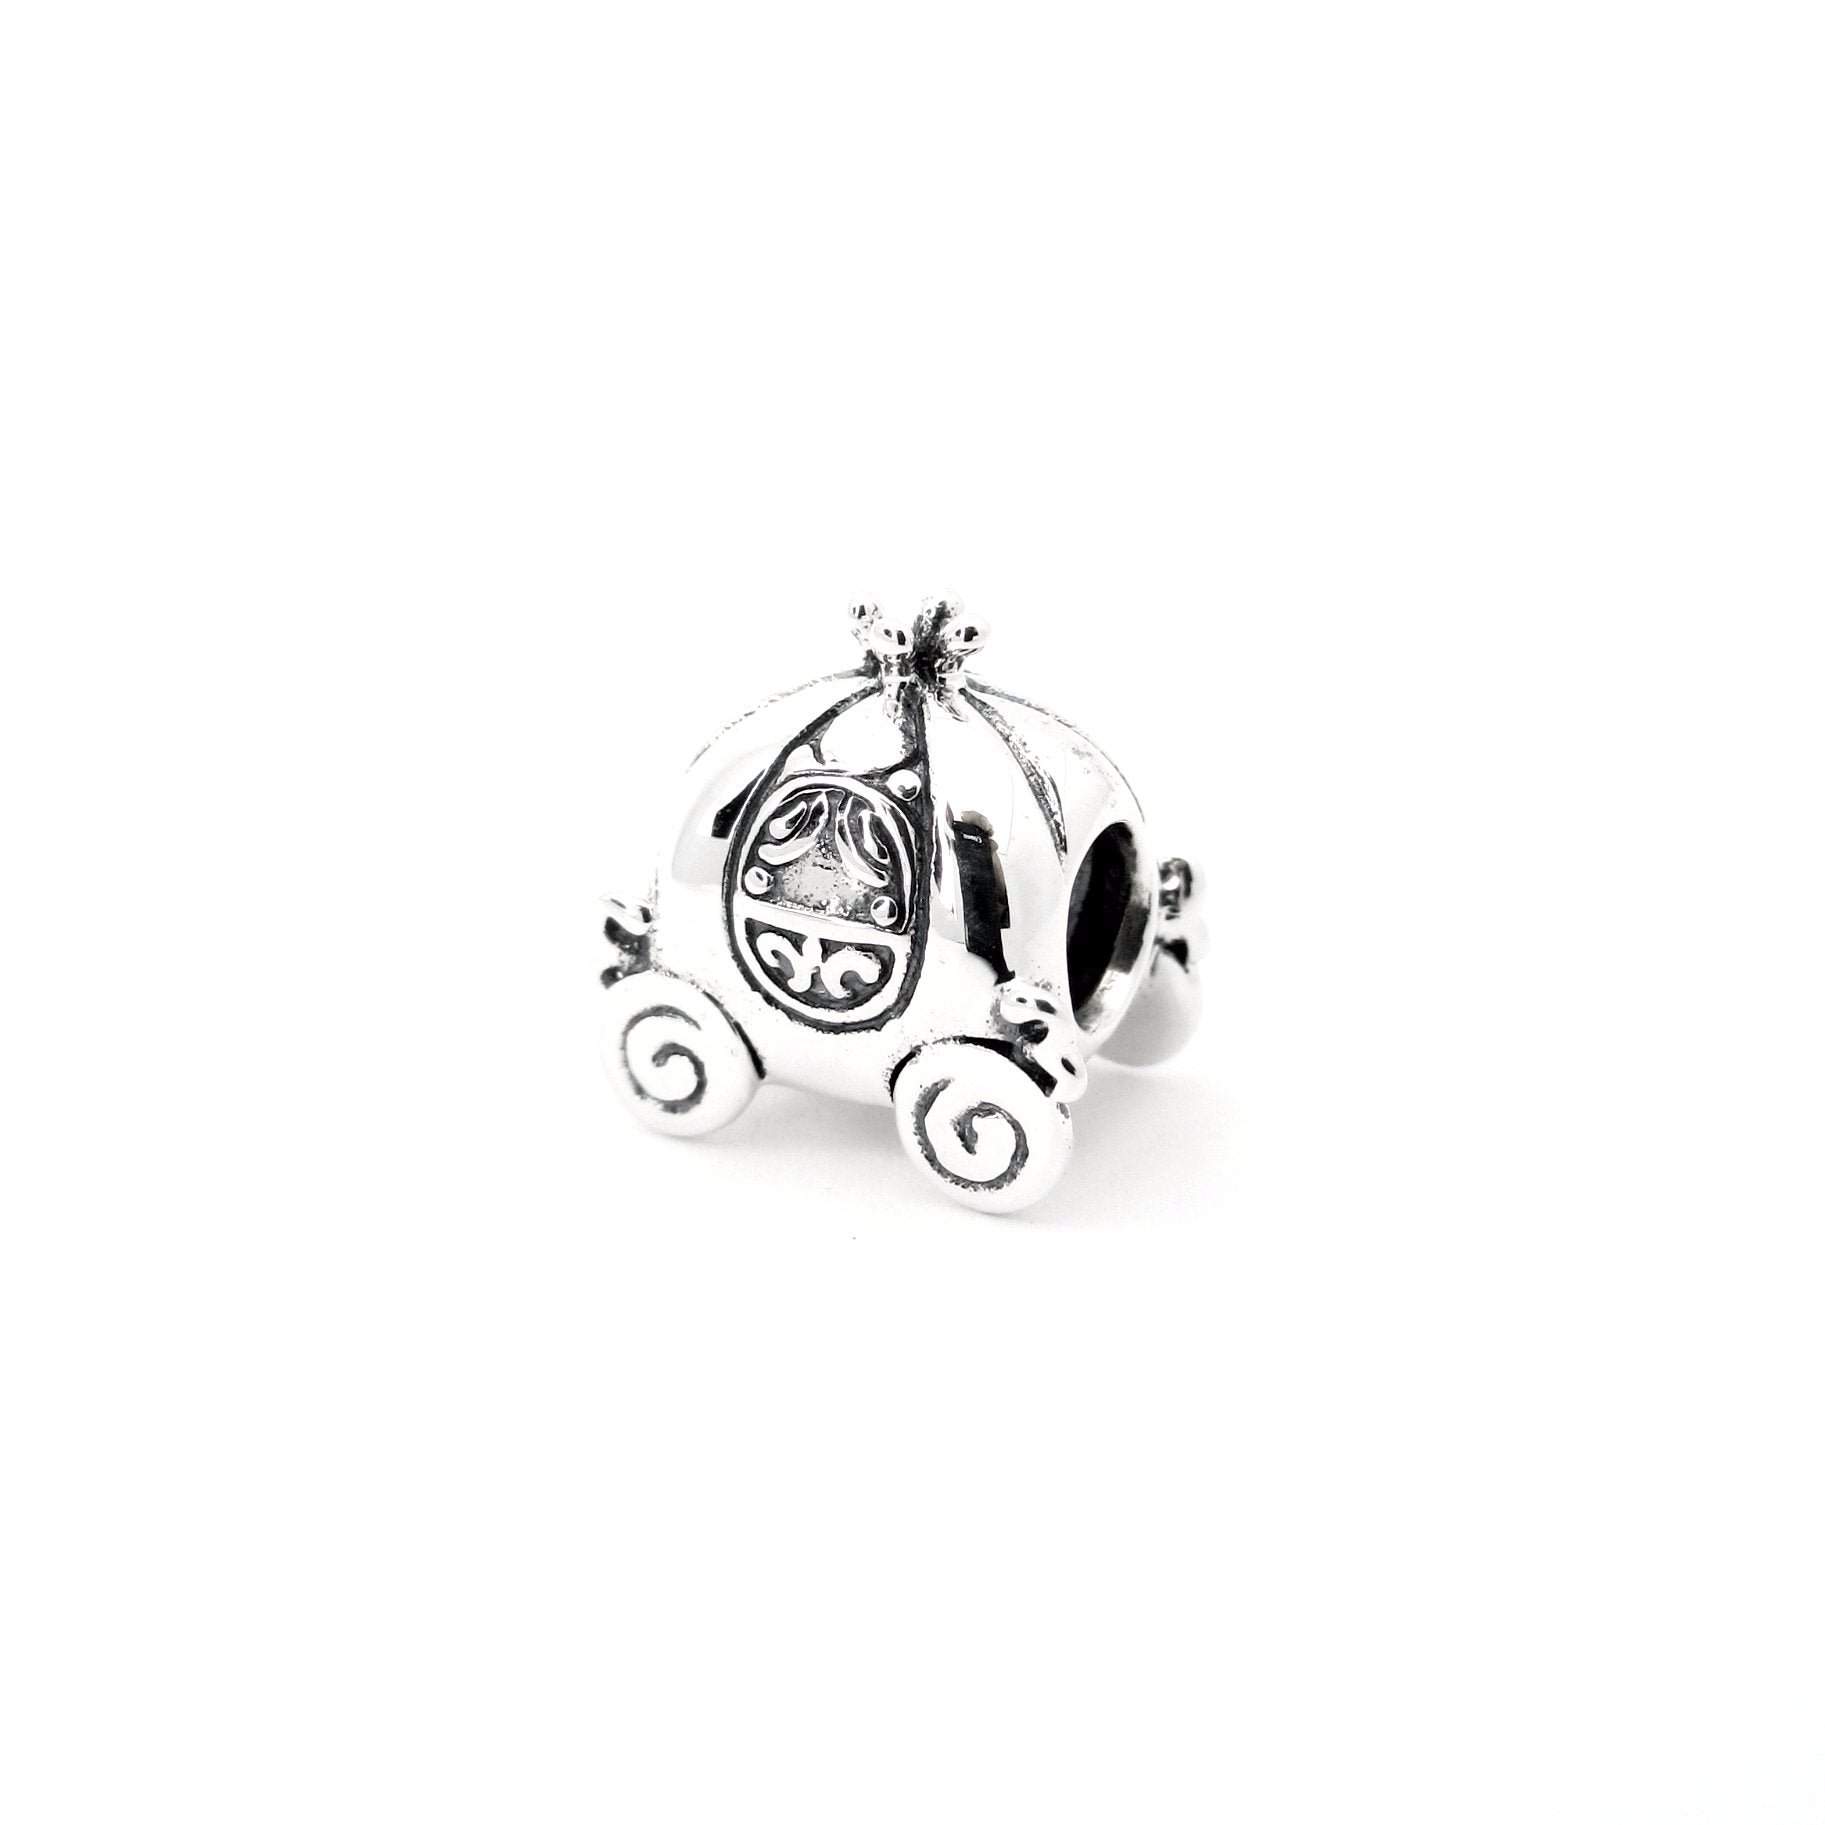 Storyland Carriage Couture Charm